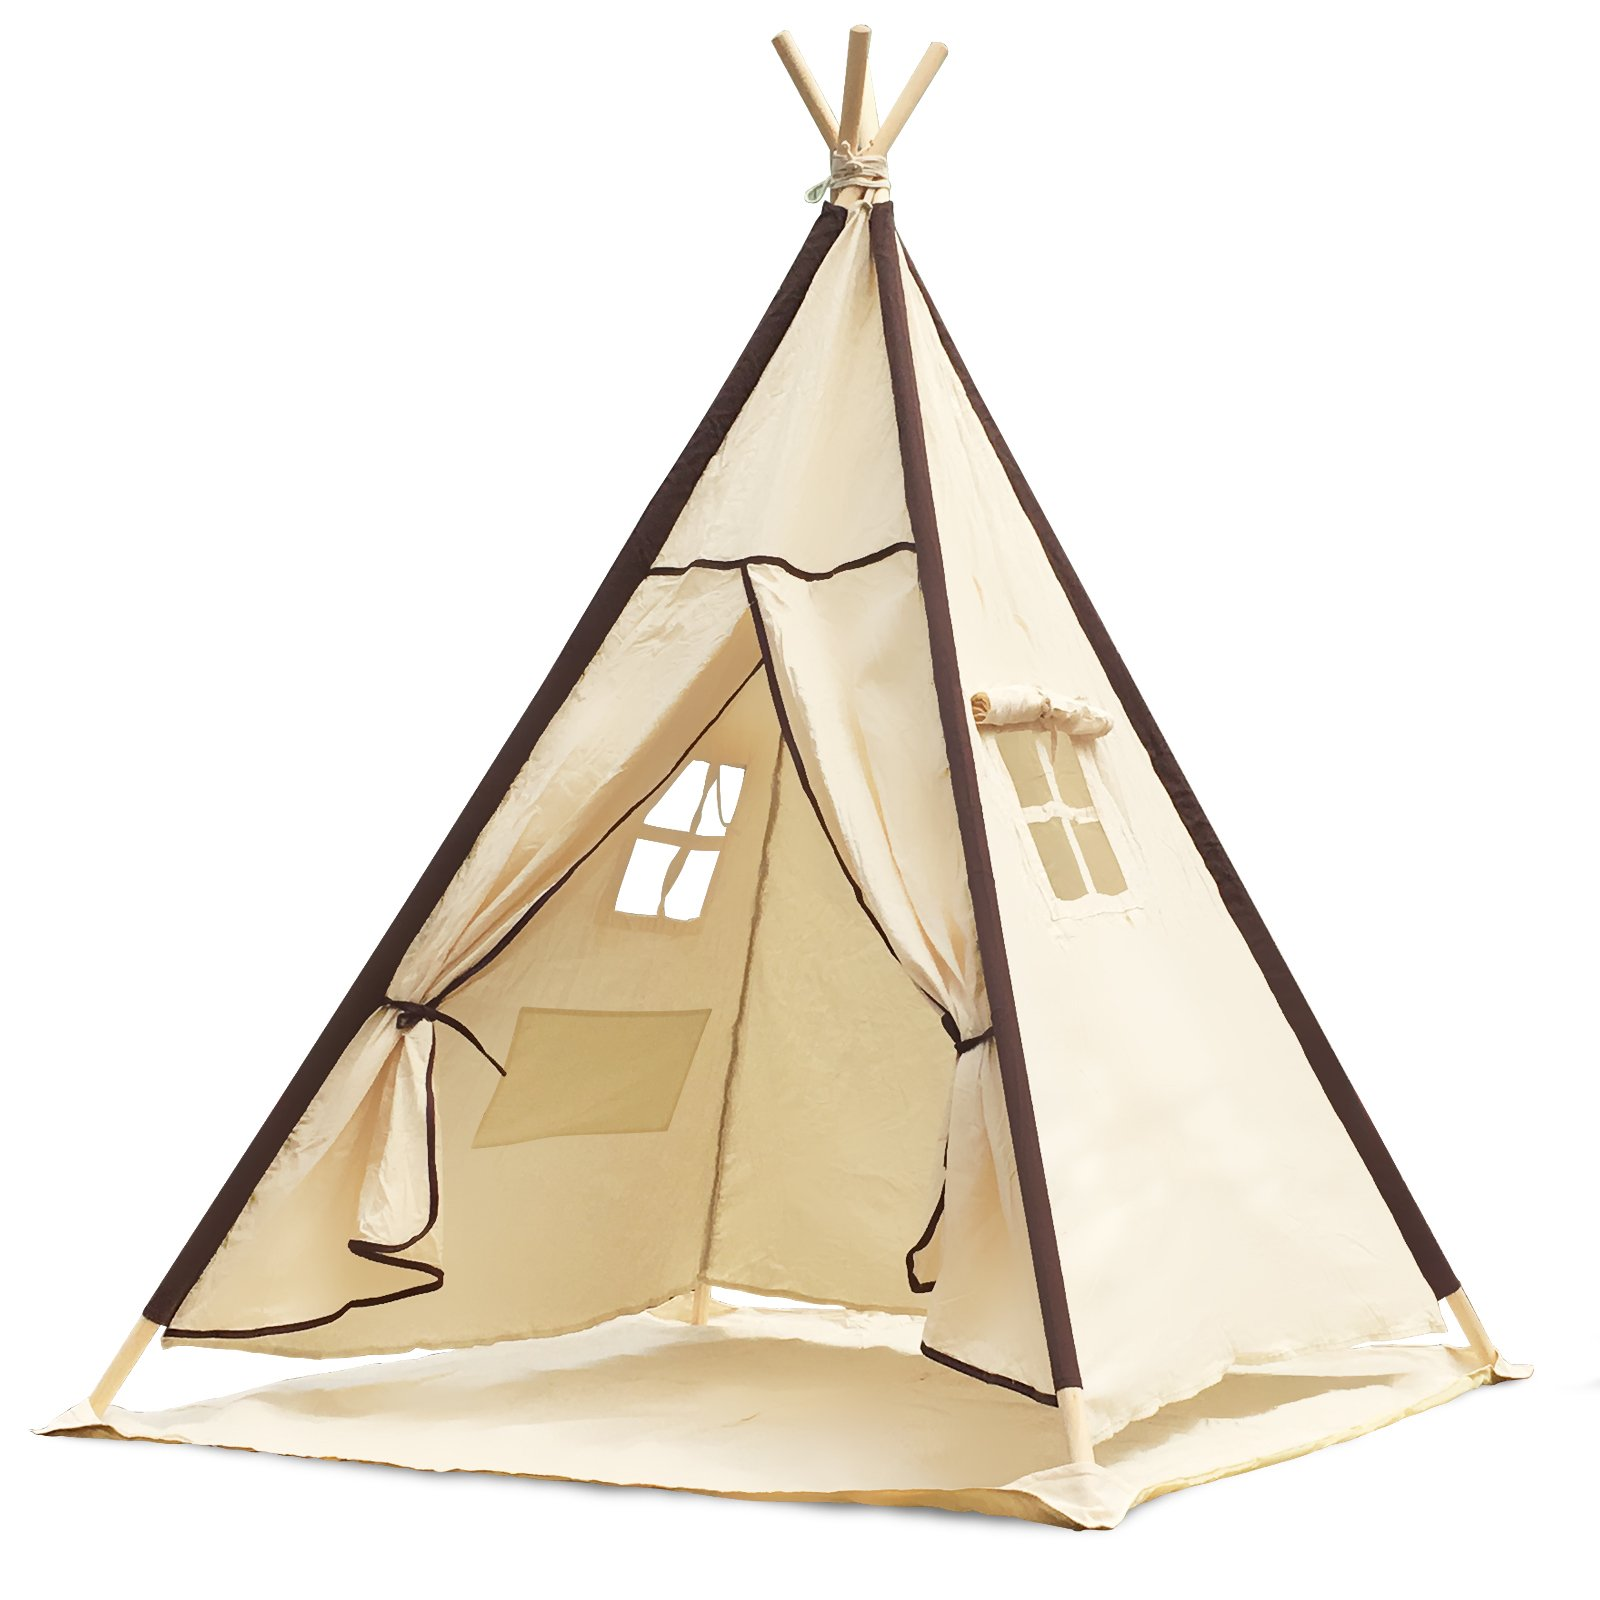 Lavievert Indian Canvas Teepee Children Playhouse Kids Play Tent for Indoor or Outdoor Play - Come with A Water Resistant Bottom Mat by Lavievert